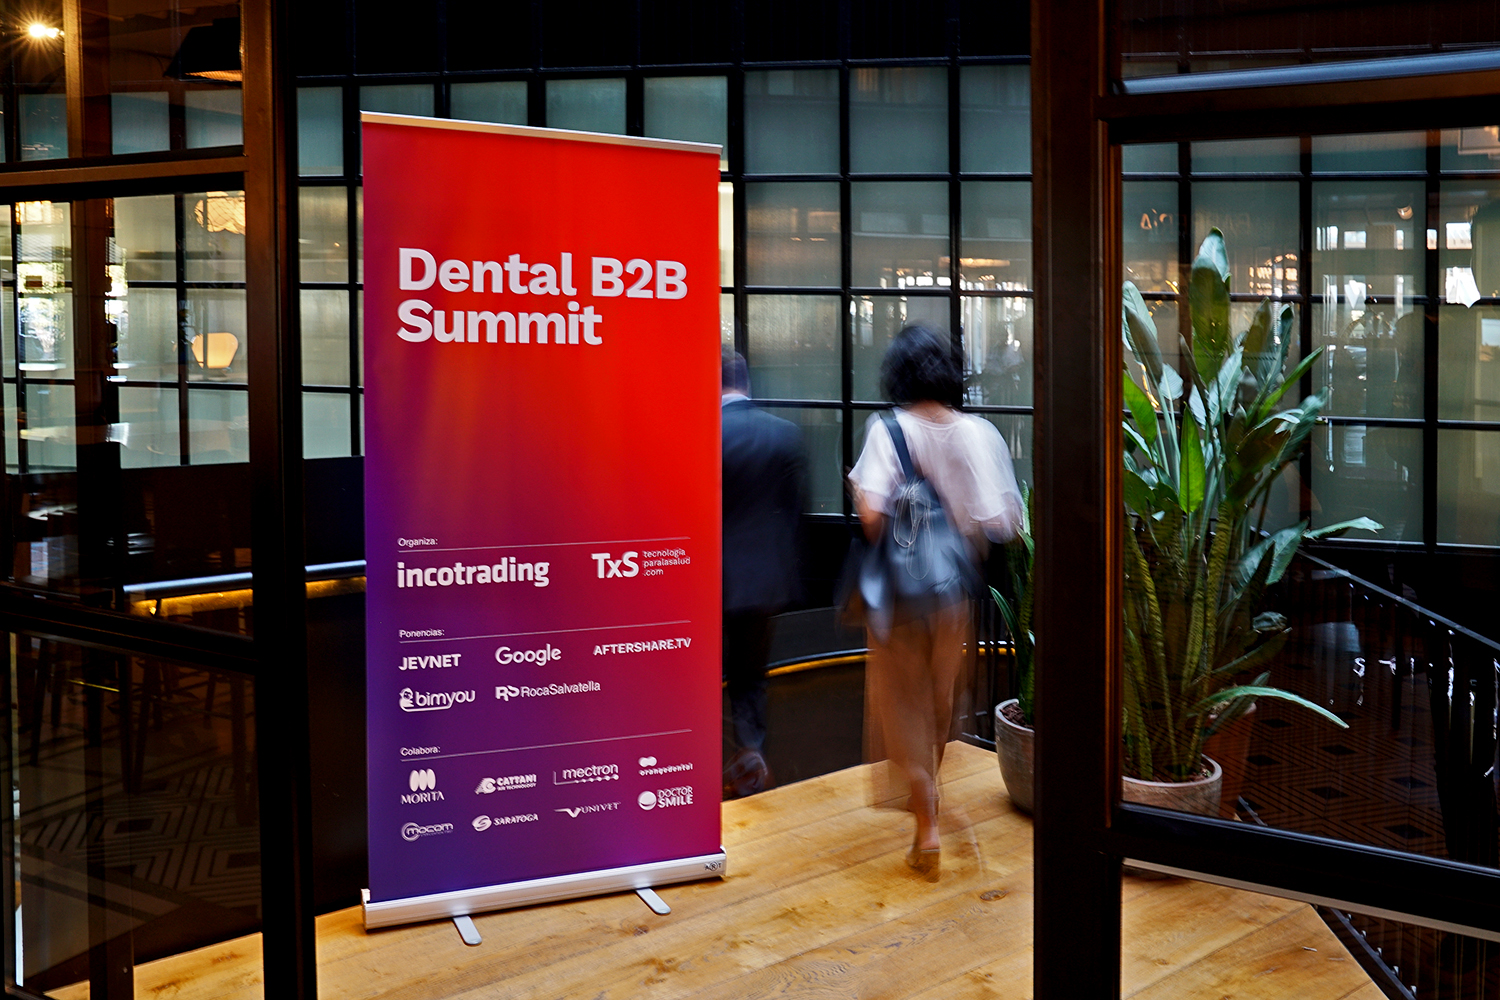 La primera edición del Dental Summit B2B 2018